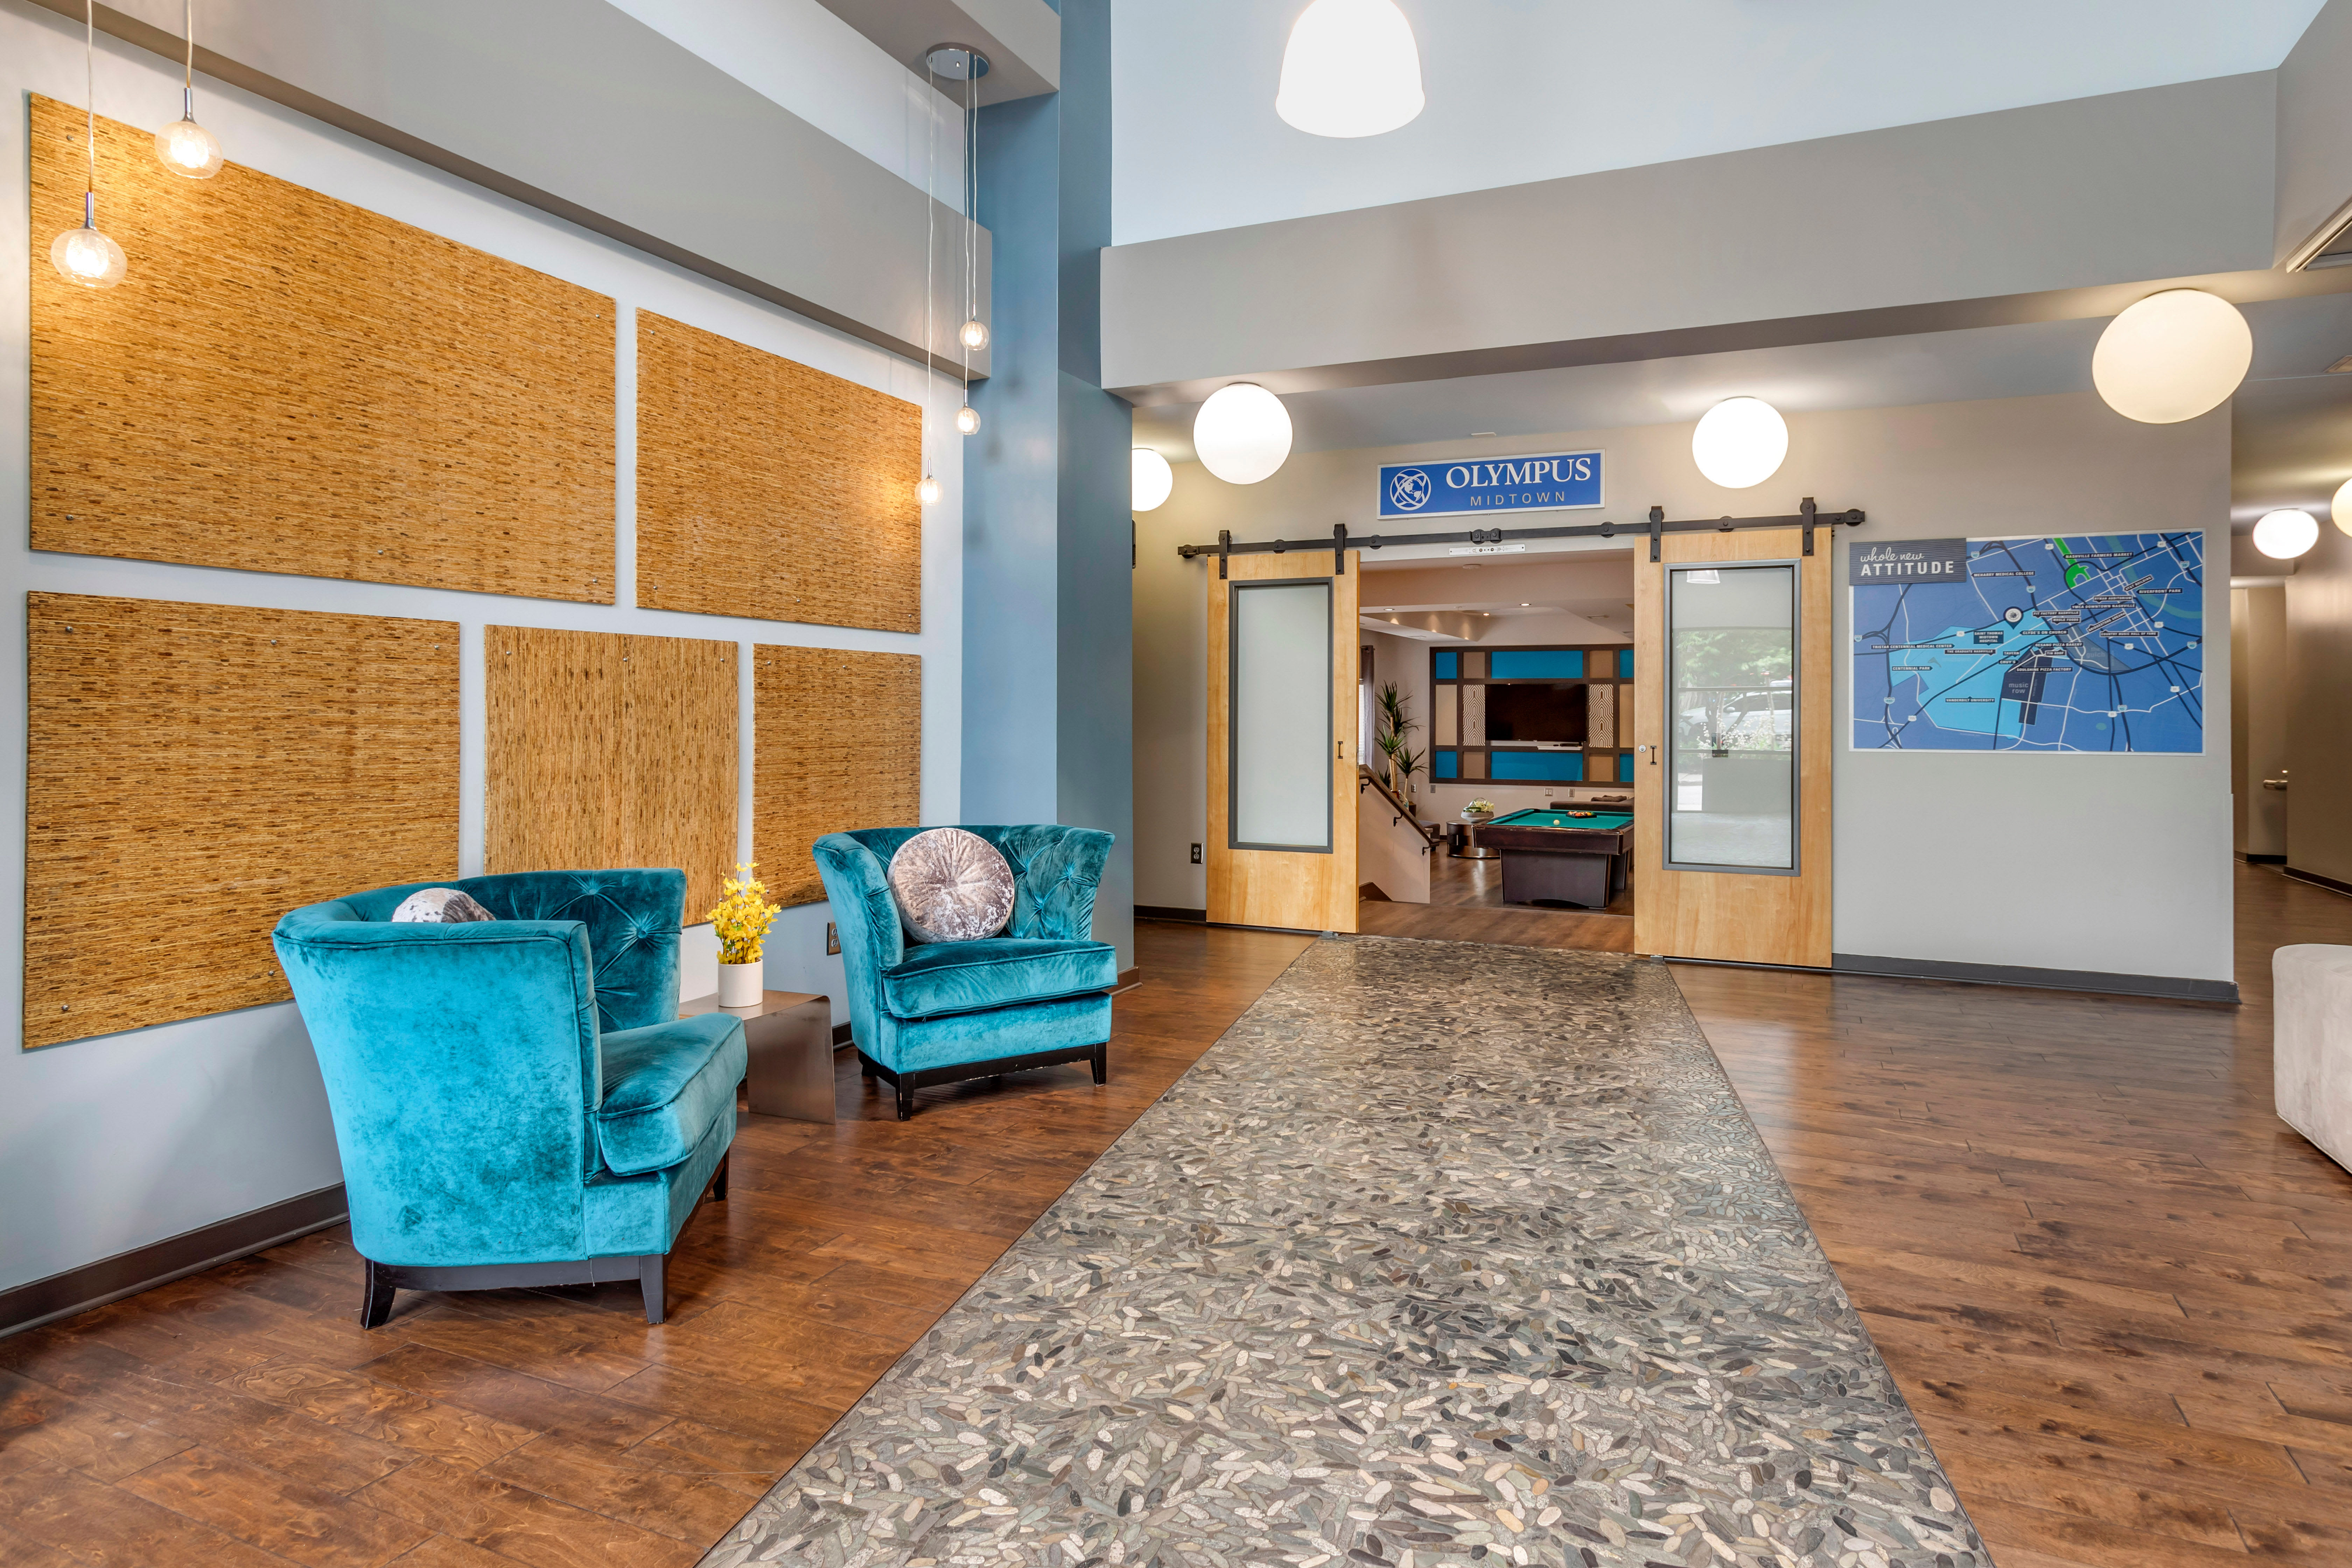 Bright and welcoming lobby interior at Olympus Midtown in Nashville, Tennessee